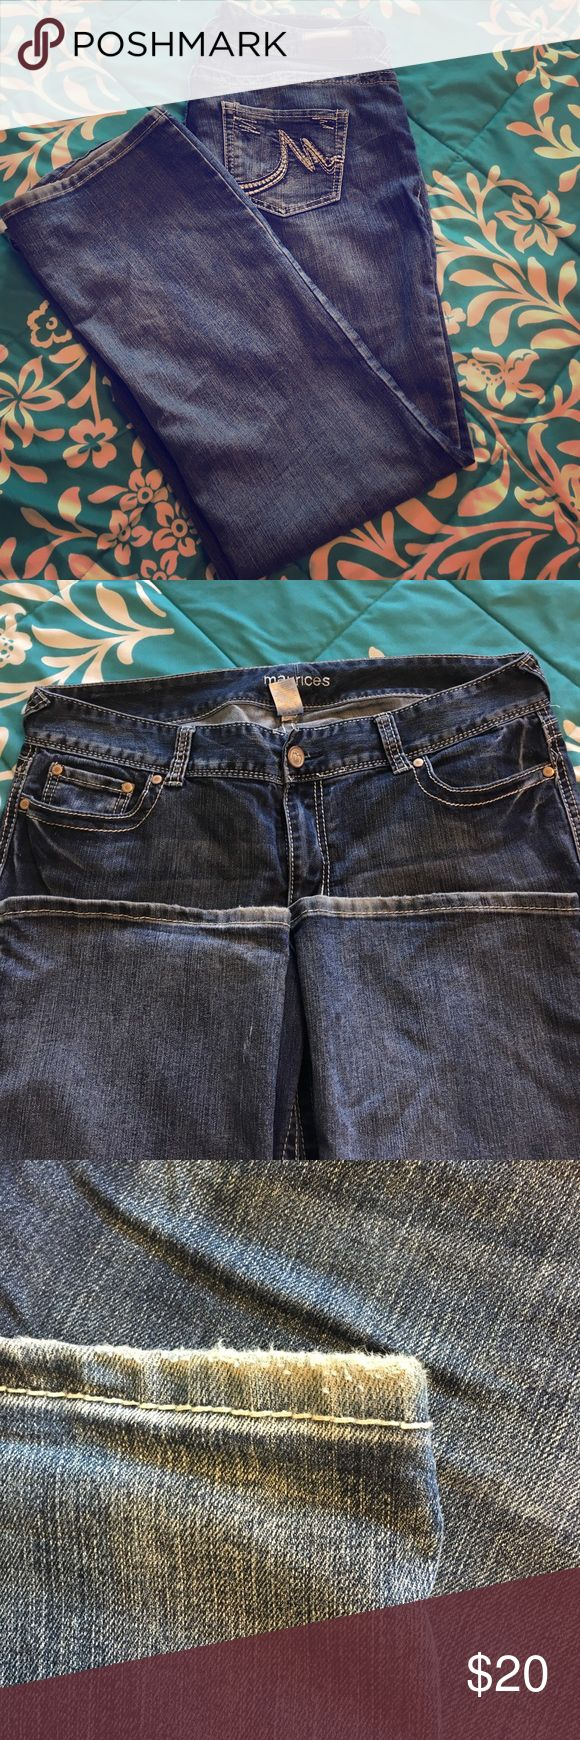 Maurices jeans Size 16 regular slim bootcut jean gently worn. Minor wearing near heel. Run a little slim in hip and thigh. Would fit size 14 Maurices Jeans Boot Cut